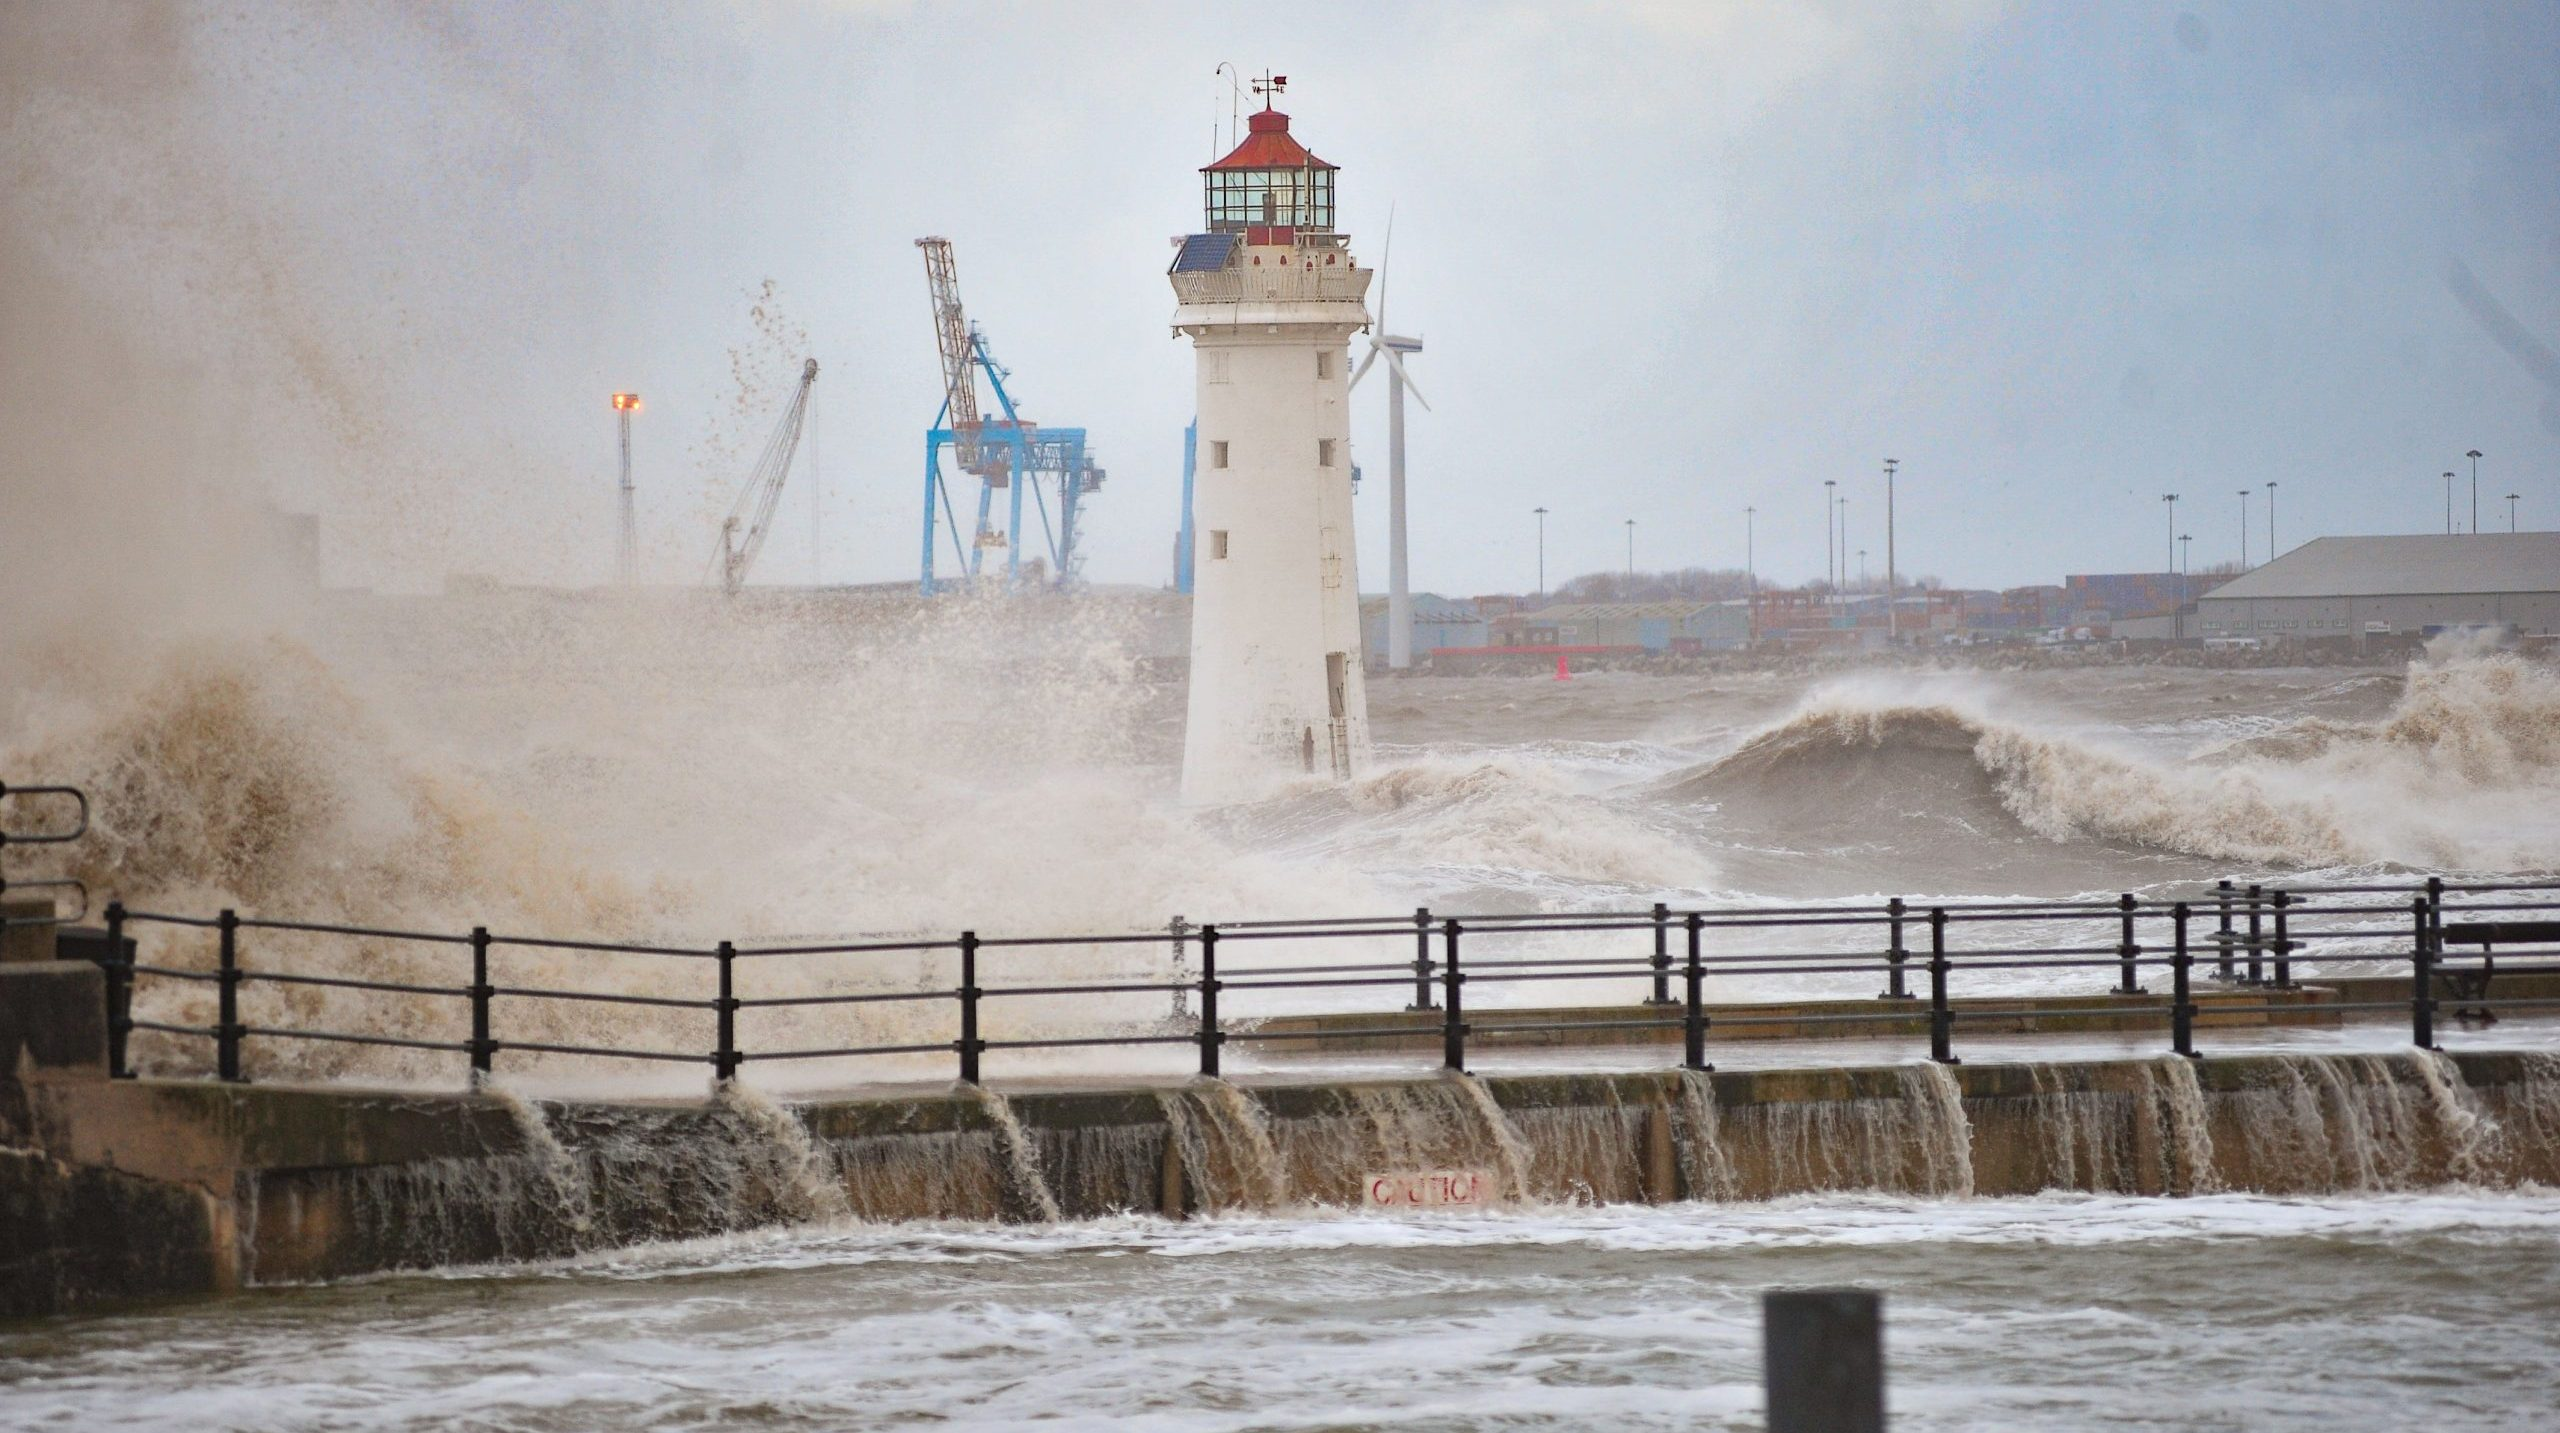 UK weather: 'Danger to life' warning as Storm Jorge batters Britain with 70mph winds and heavy rain